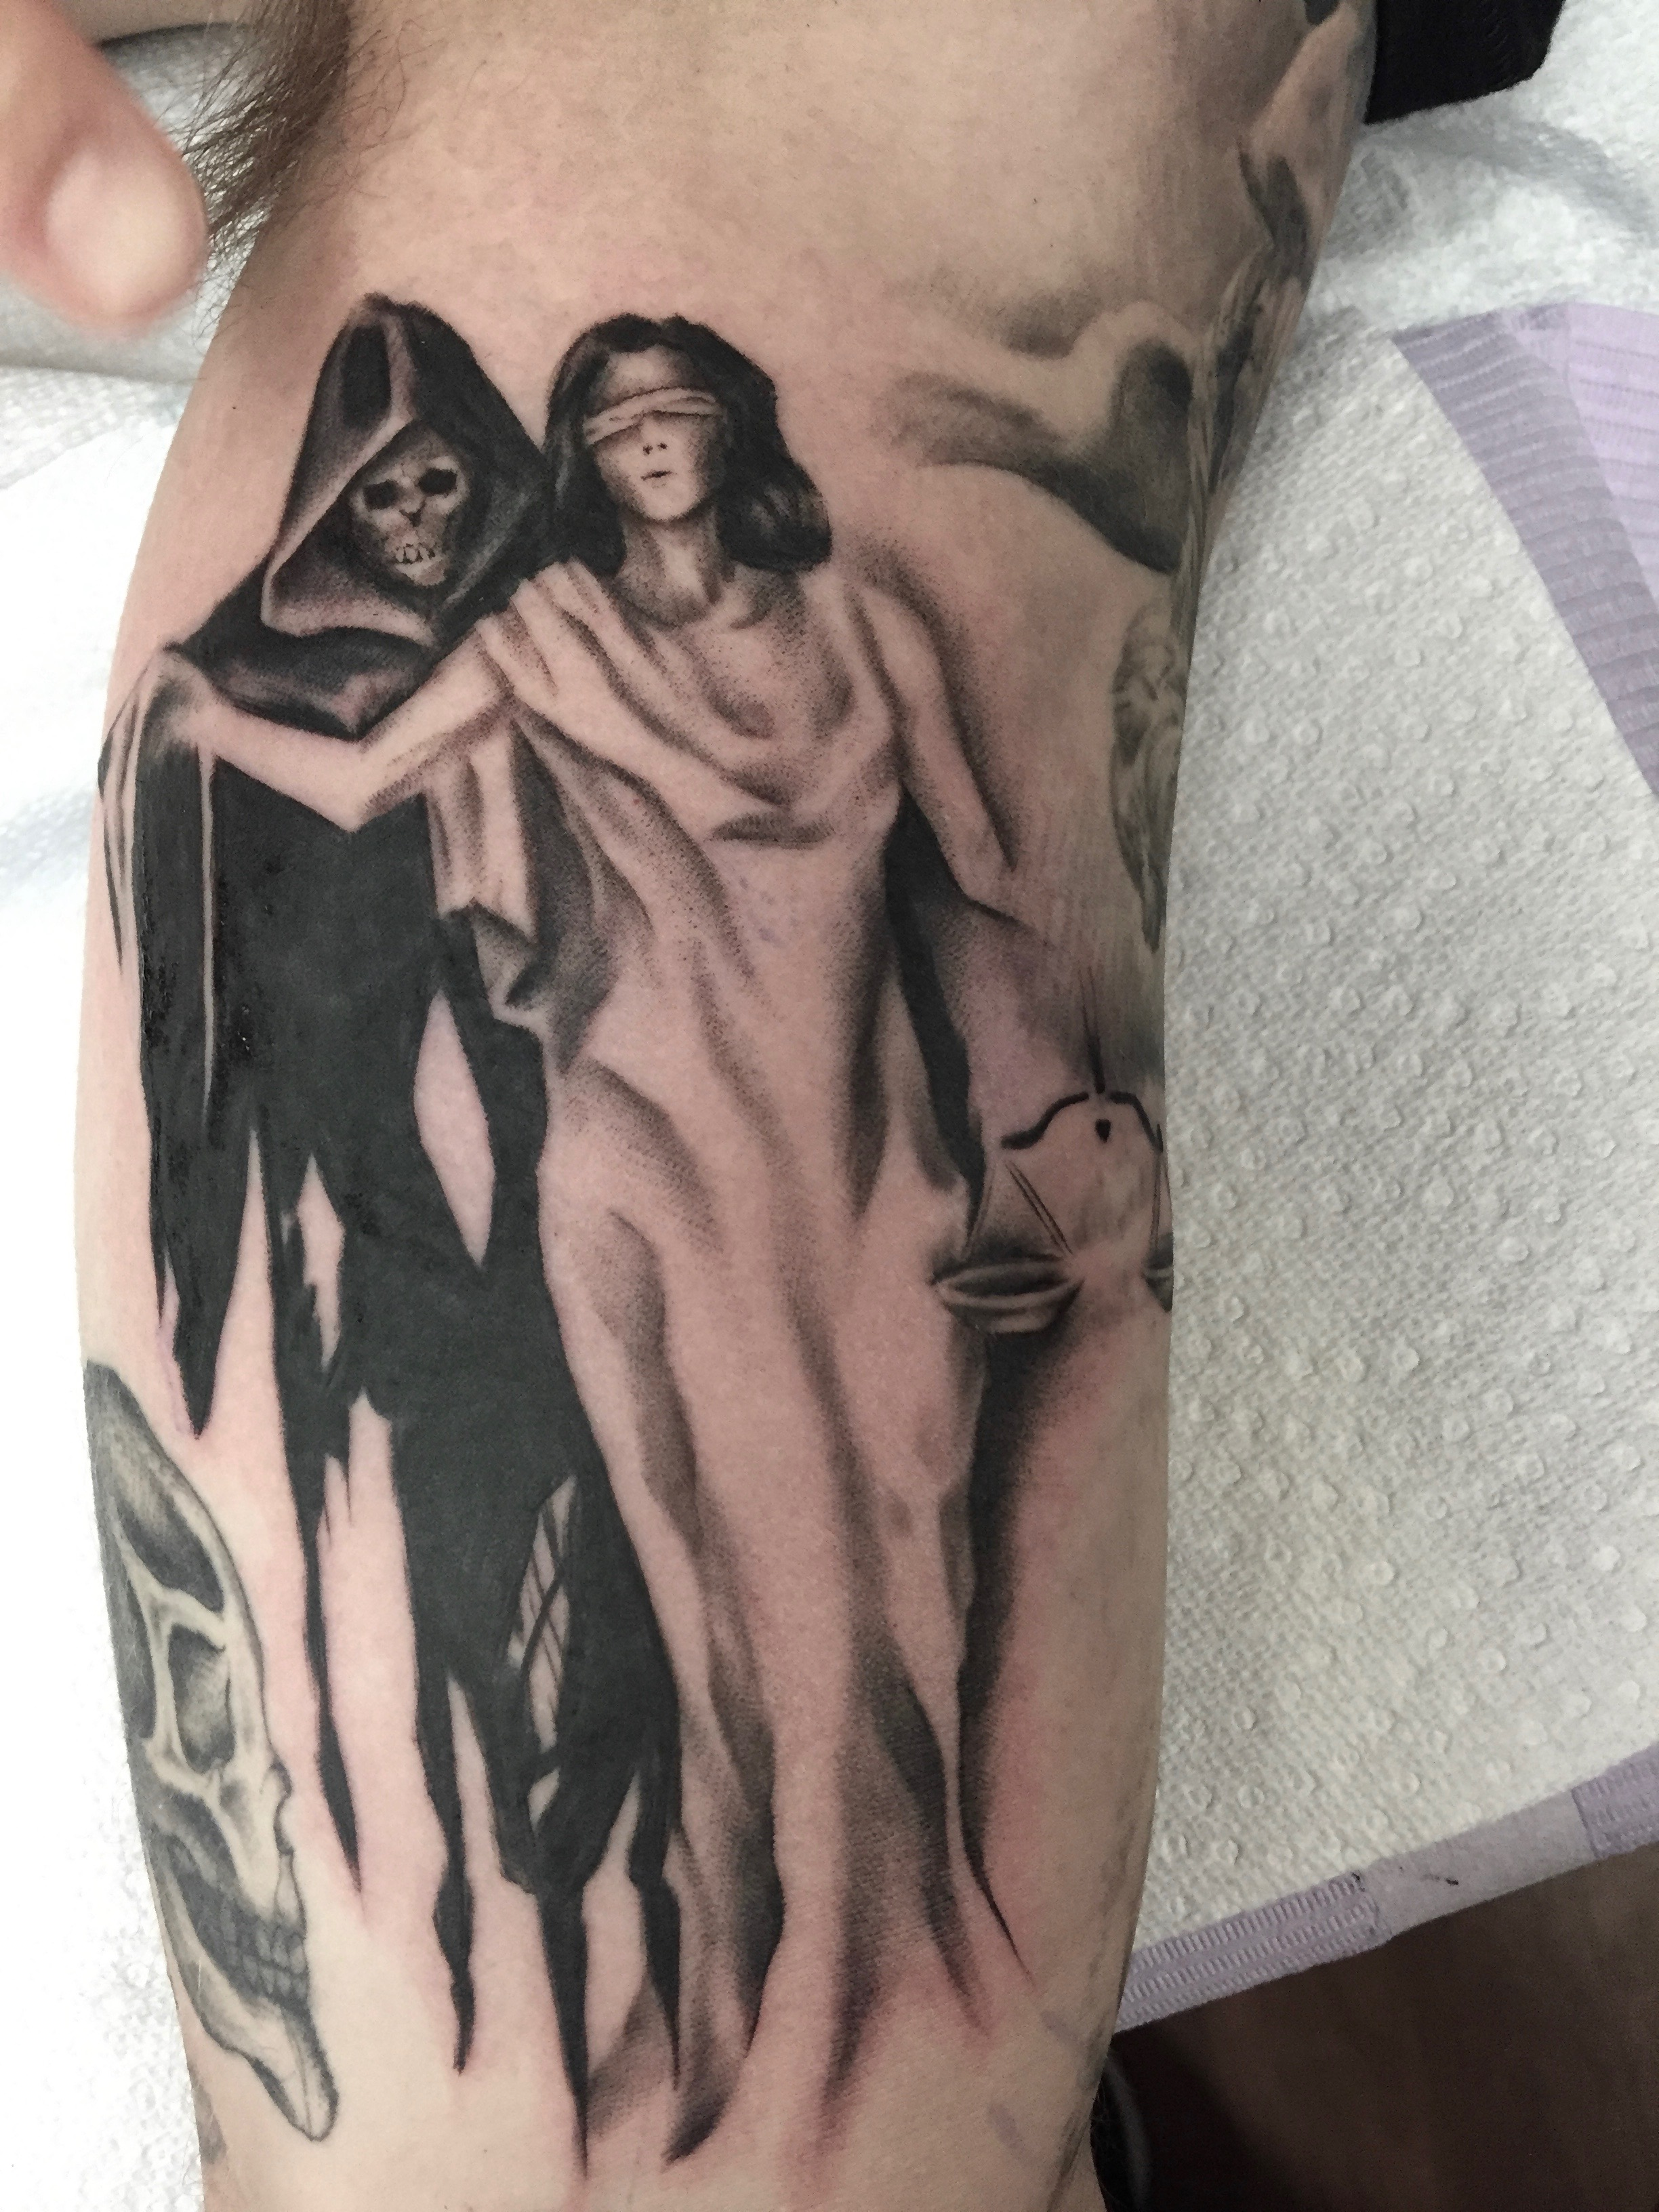 Blackwork death tattoo by Alveno